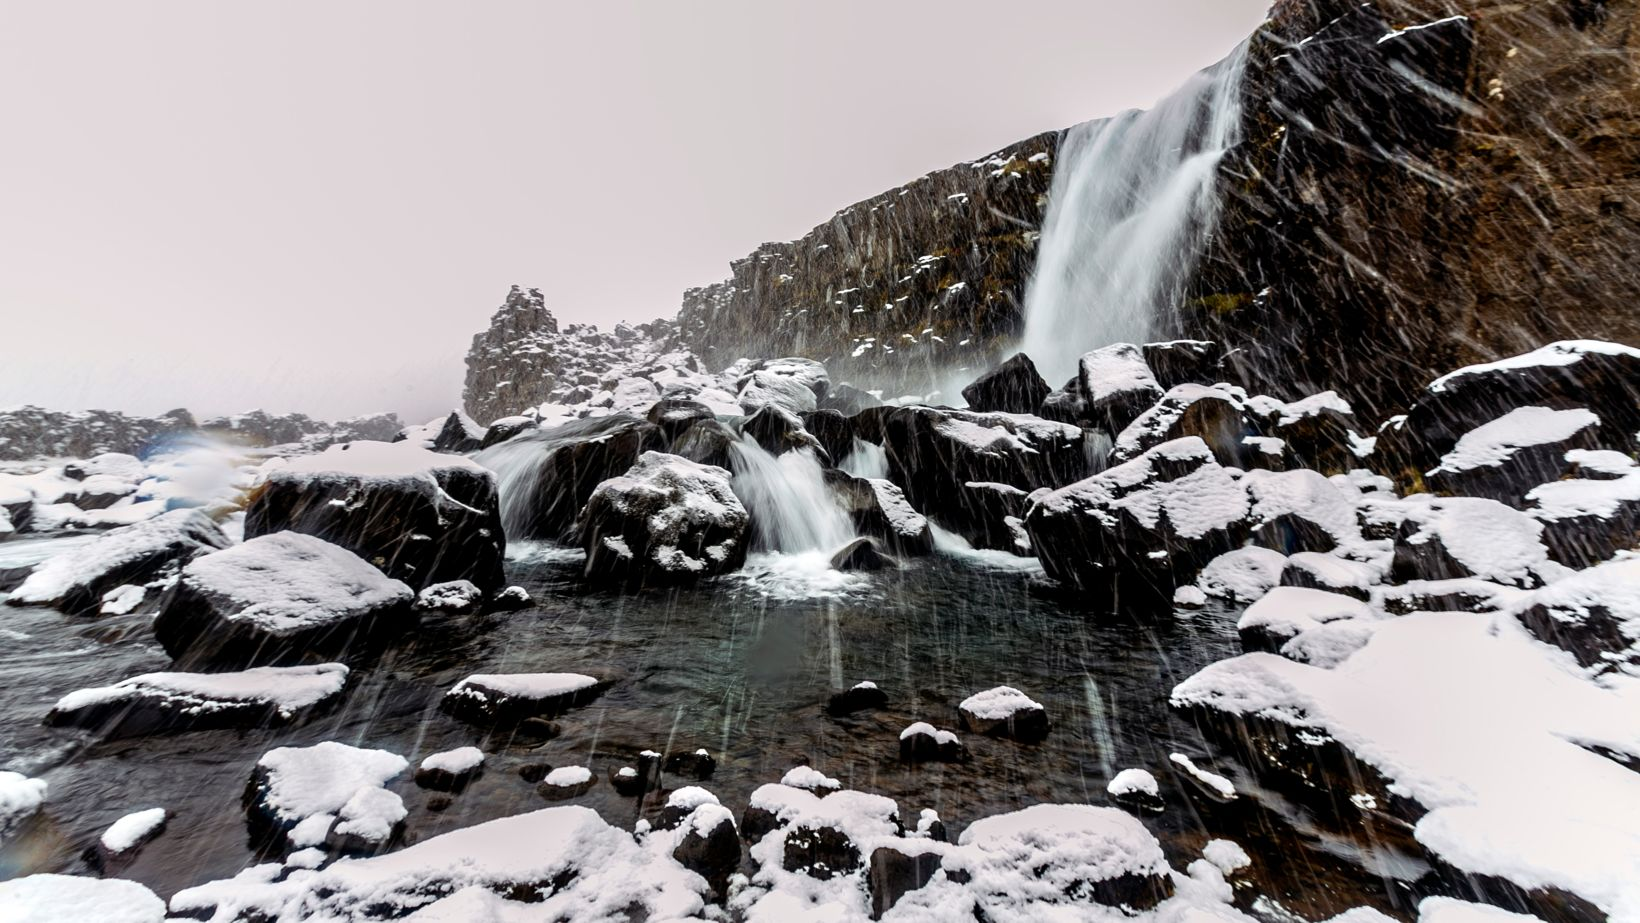 Cold-hearted weather gods throwing down sleet in Þingvellir National Park.